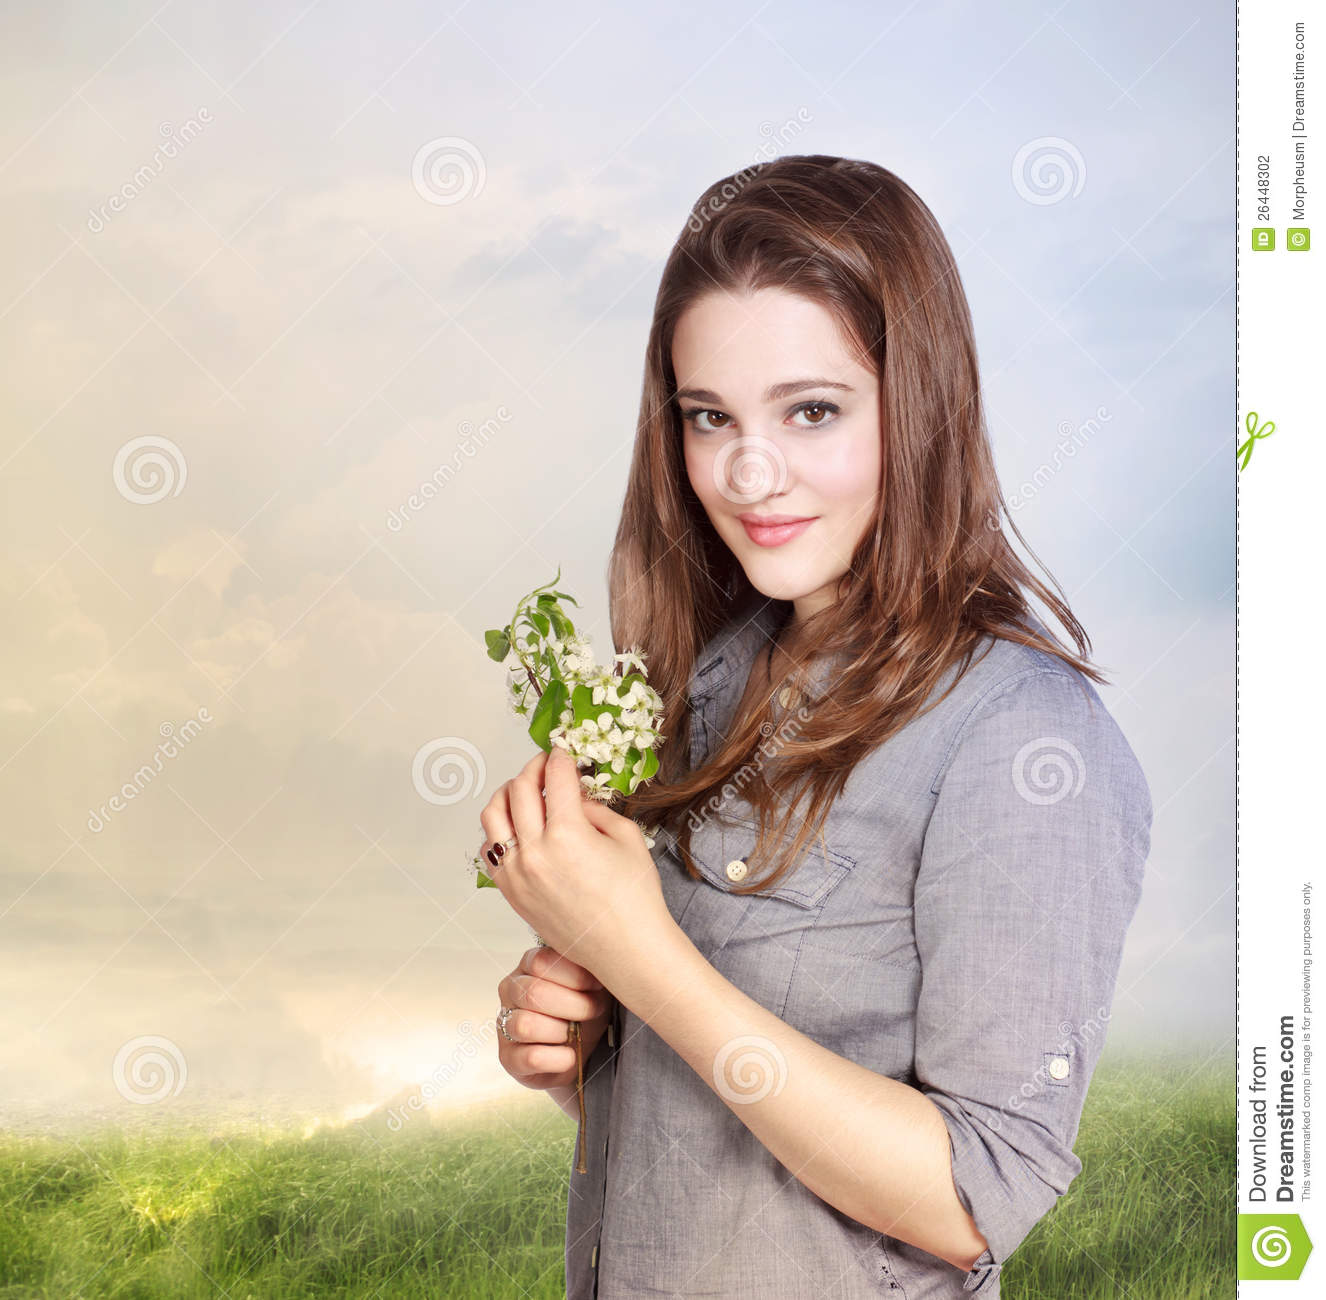 young woman holding flowers stock photography image